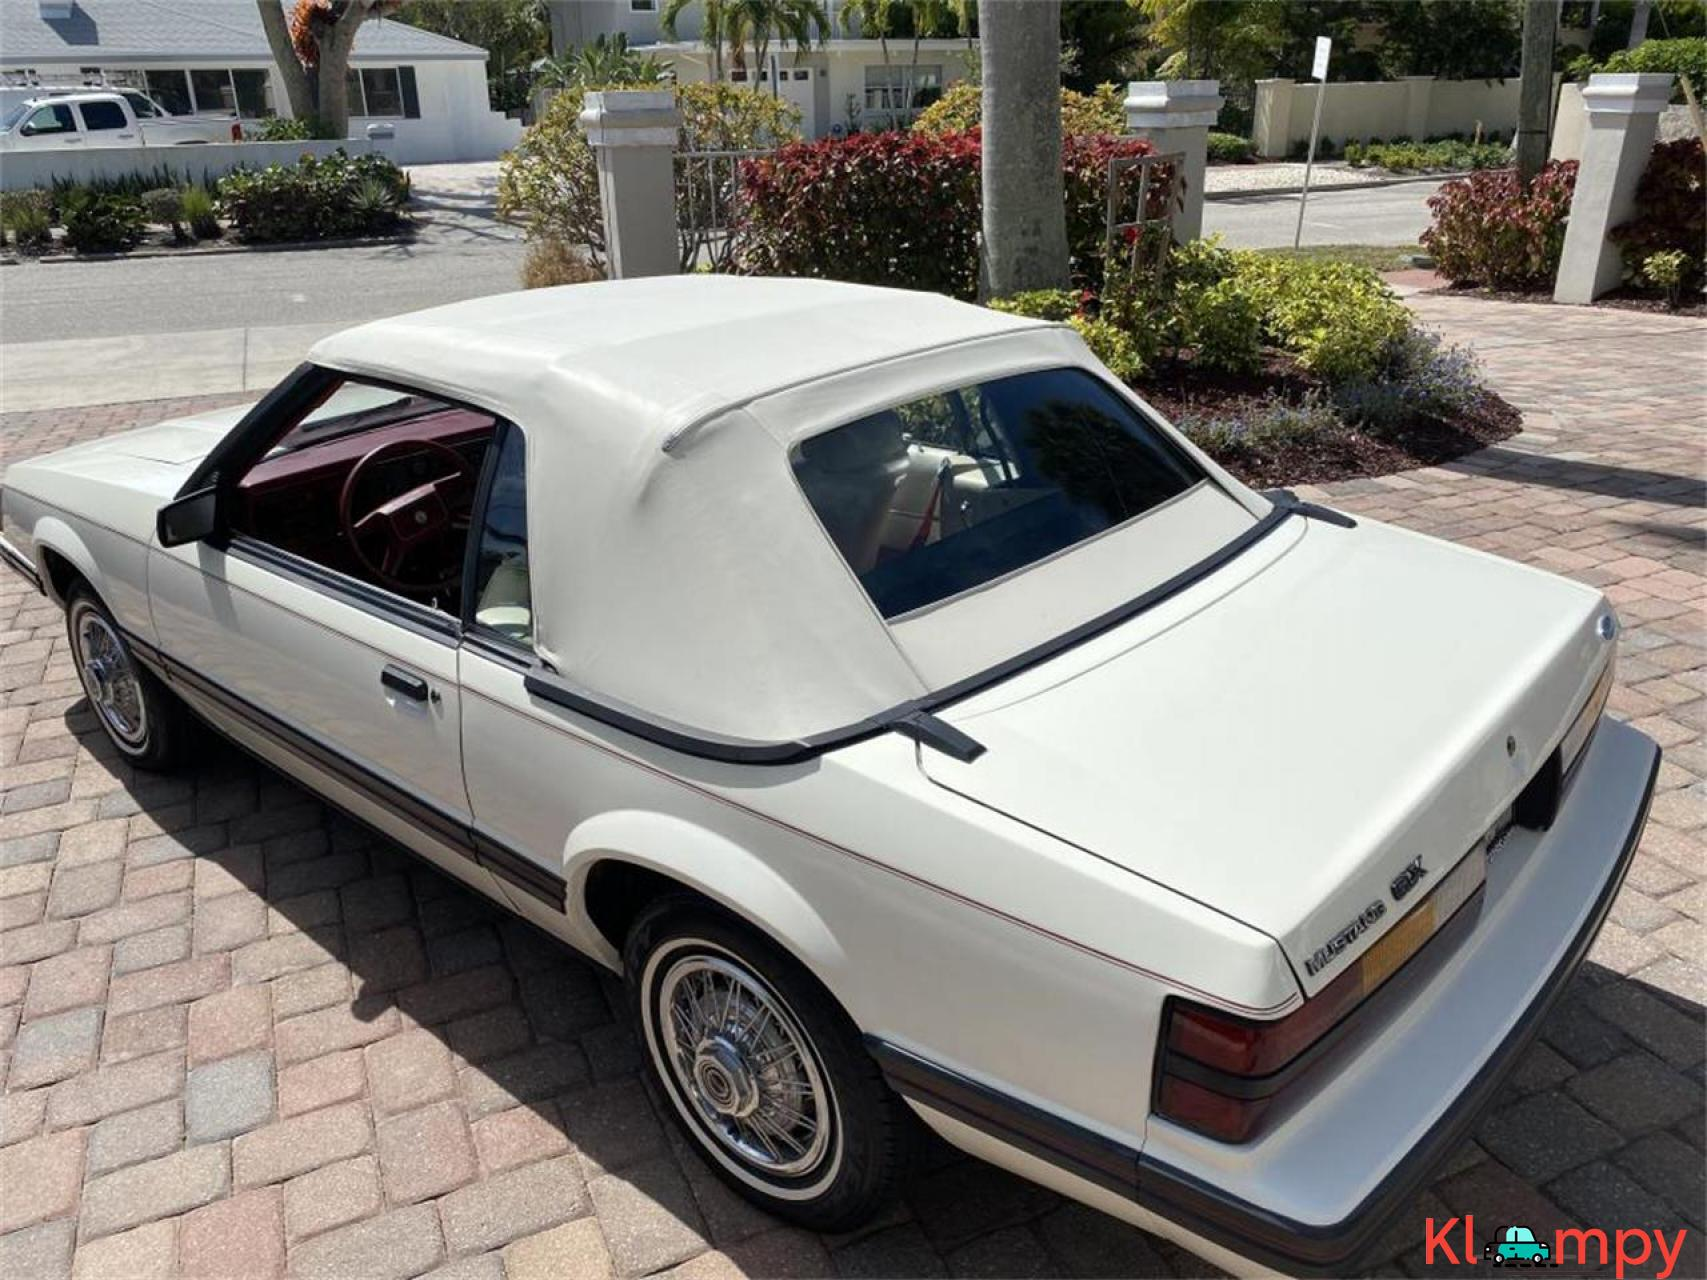 1983 Ford Mustang 3.8 LITRE V6 AUTO - 6/20